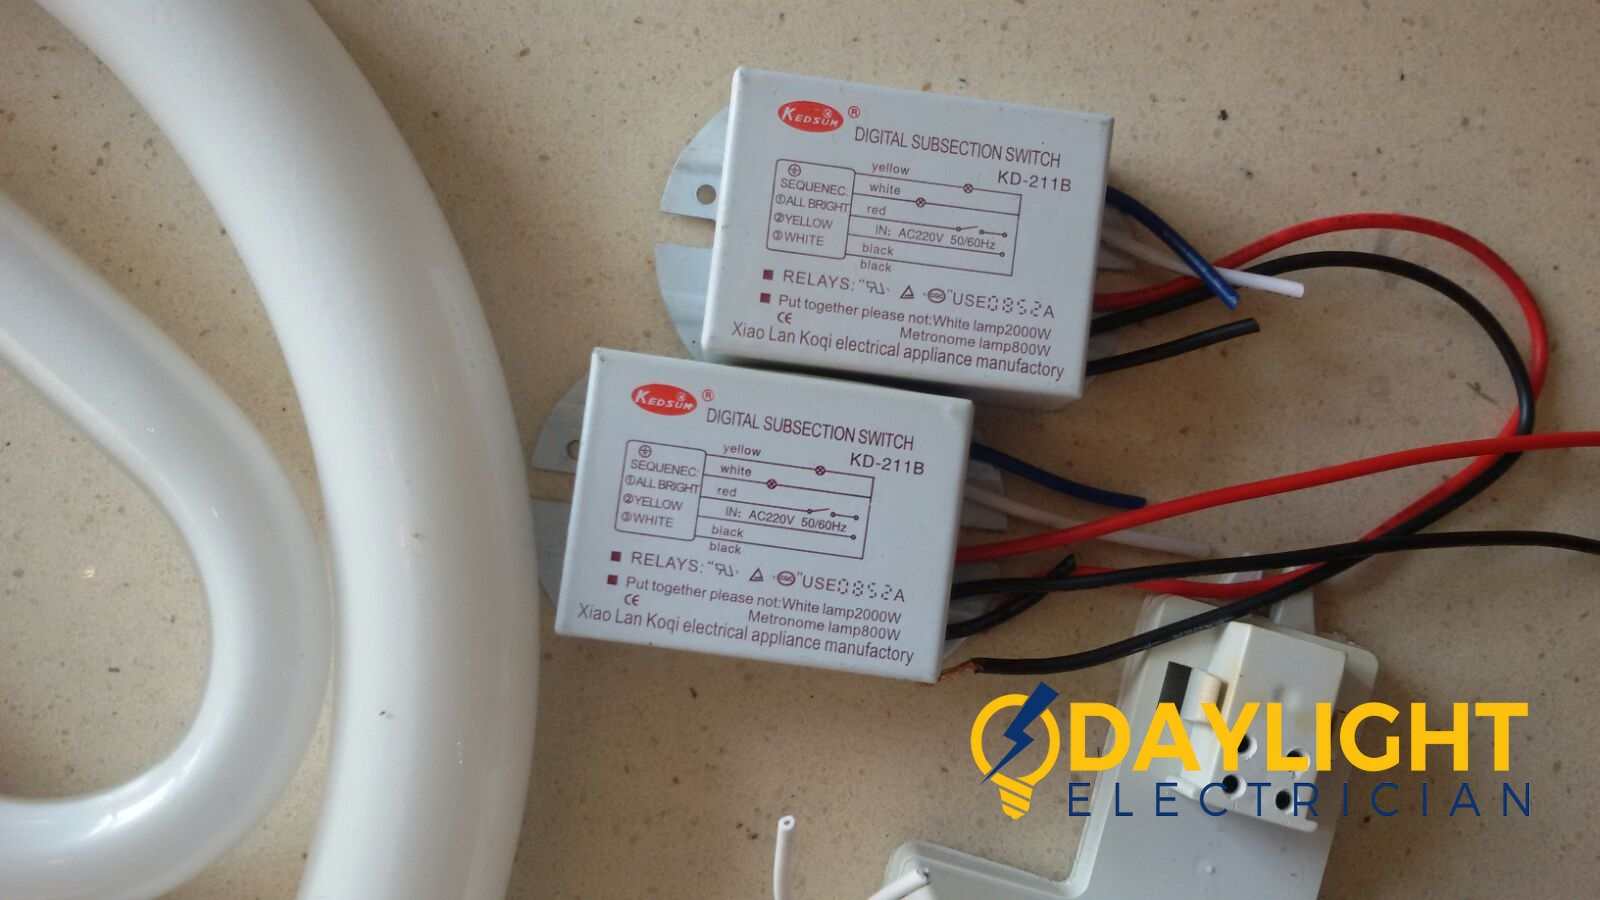 Change-light-switches-light-bulbs-electrician-singapore-landed-cashew-road_wm